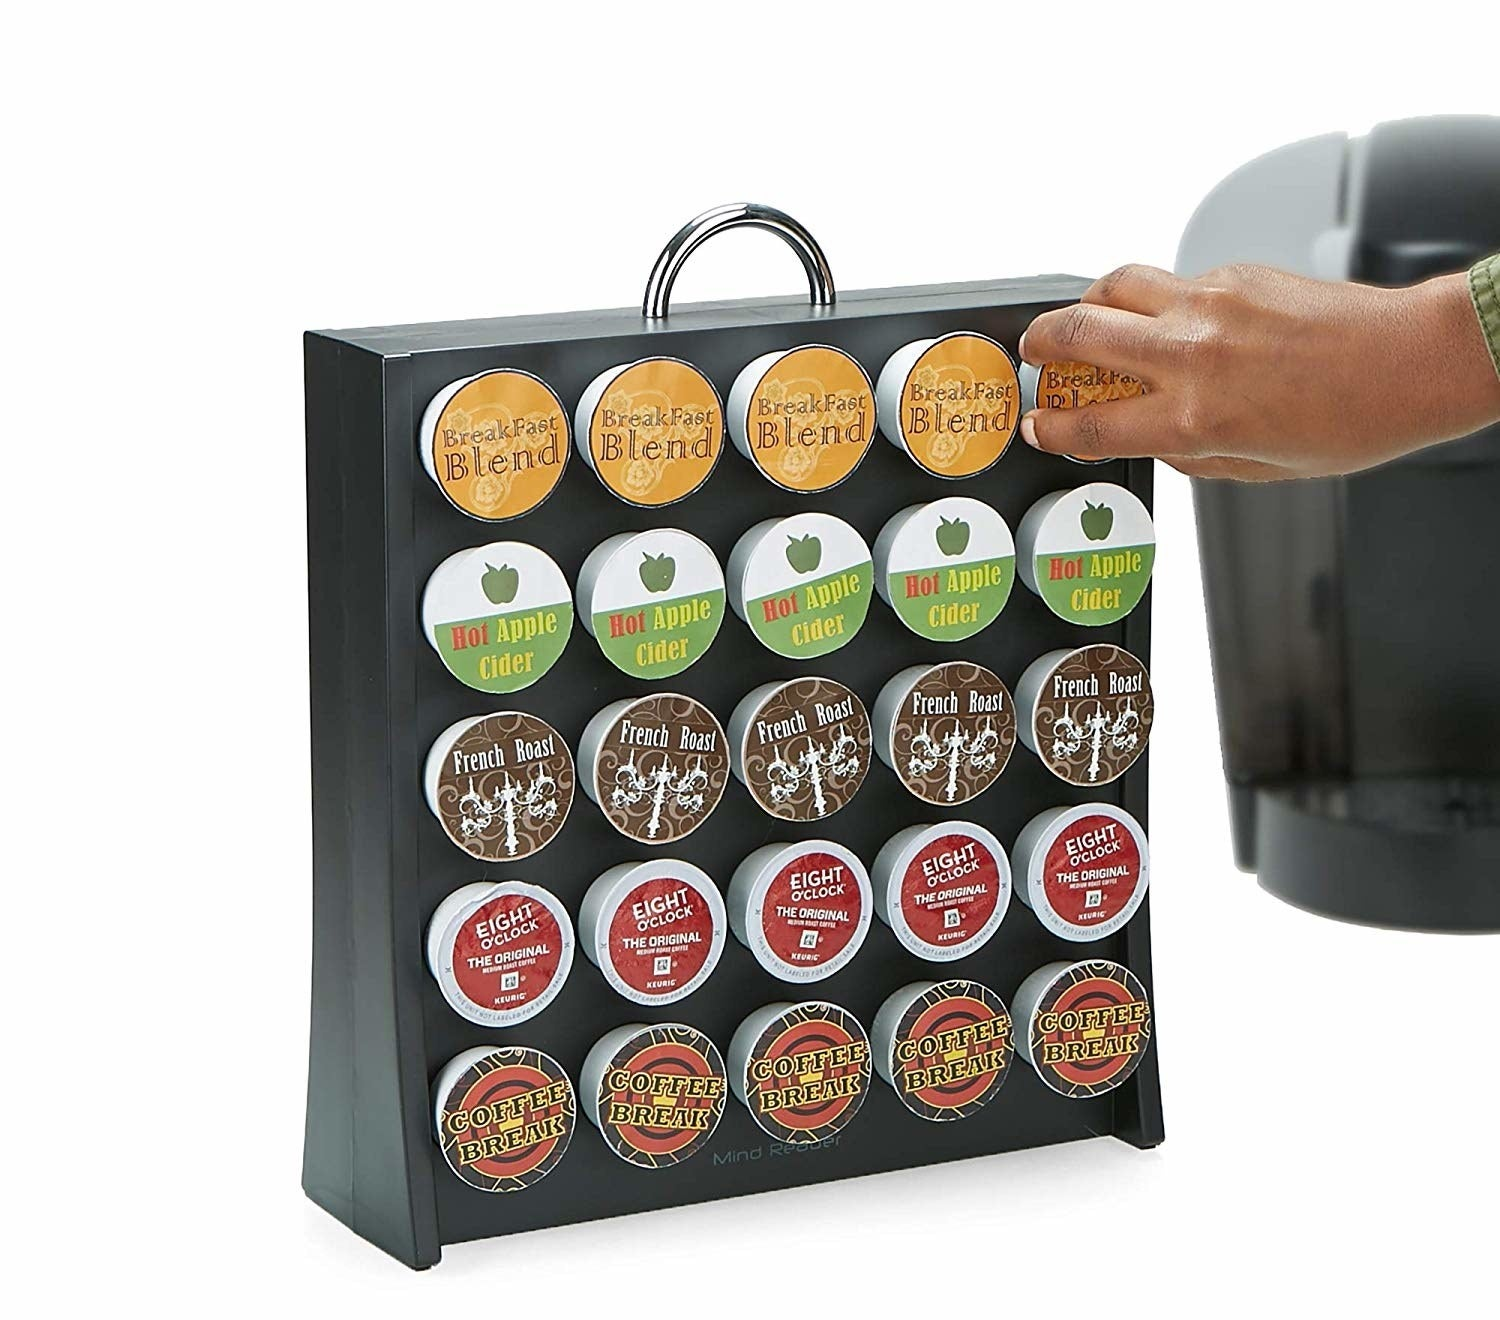 hand putting a K-cup coffee pod into the organizer that contains 25 cups in upright stand